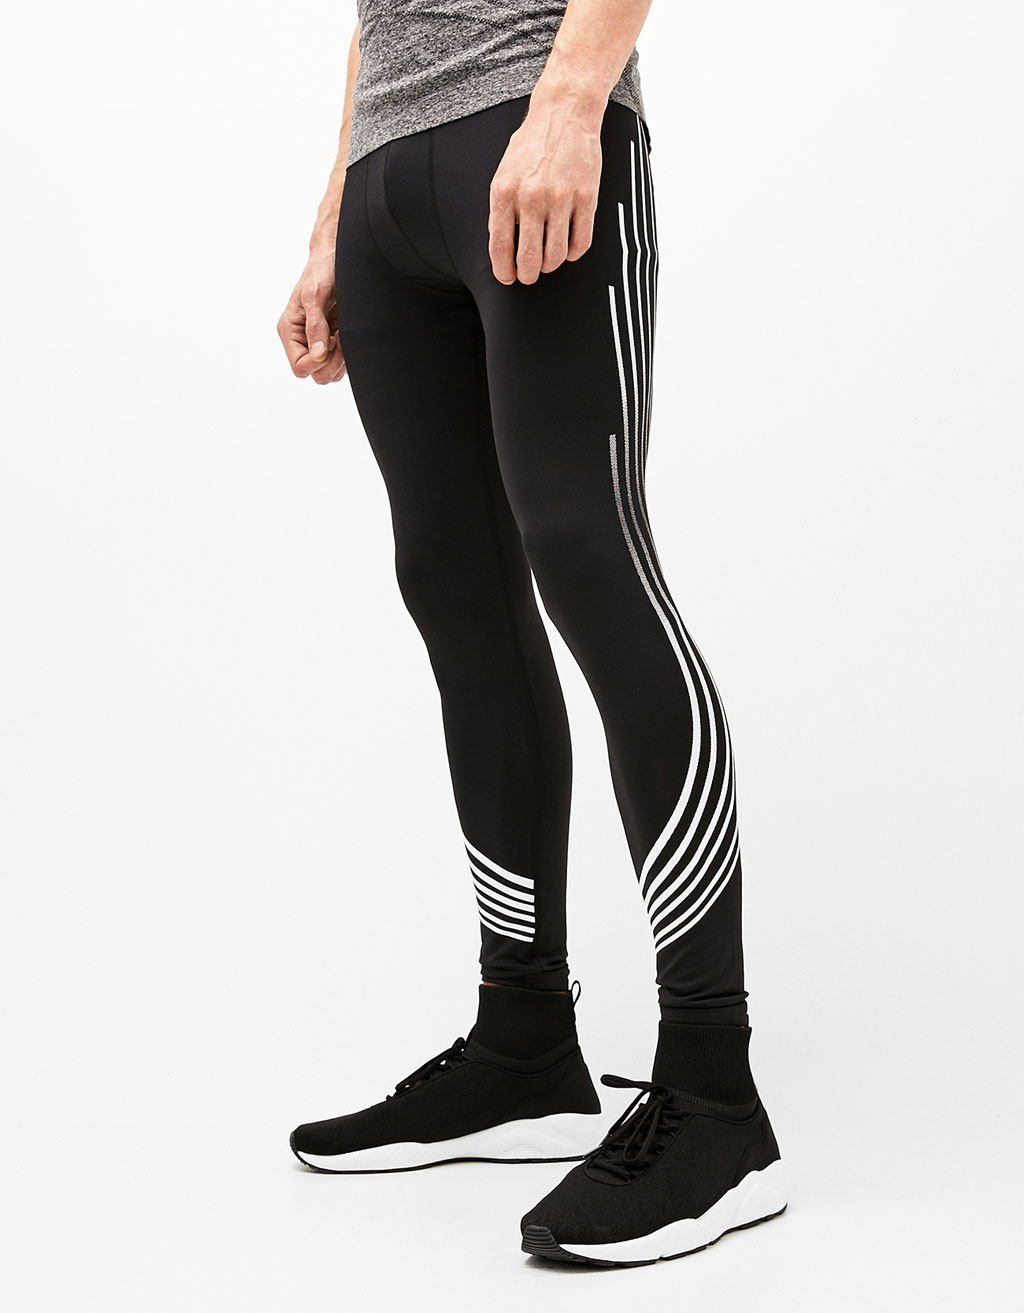 Technical sport leggings